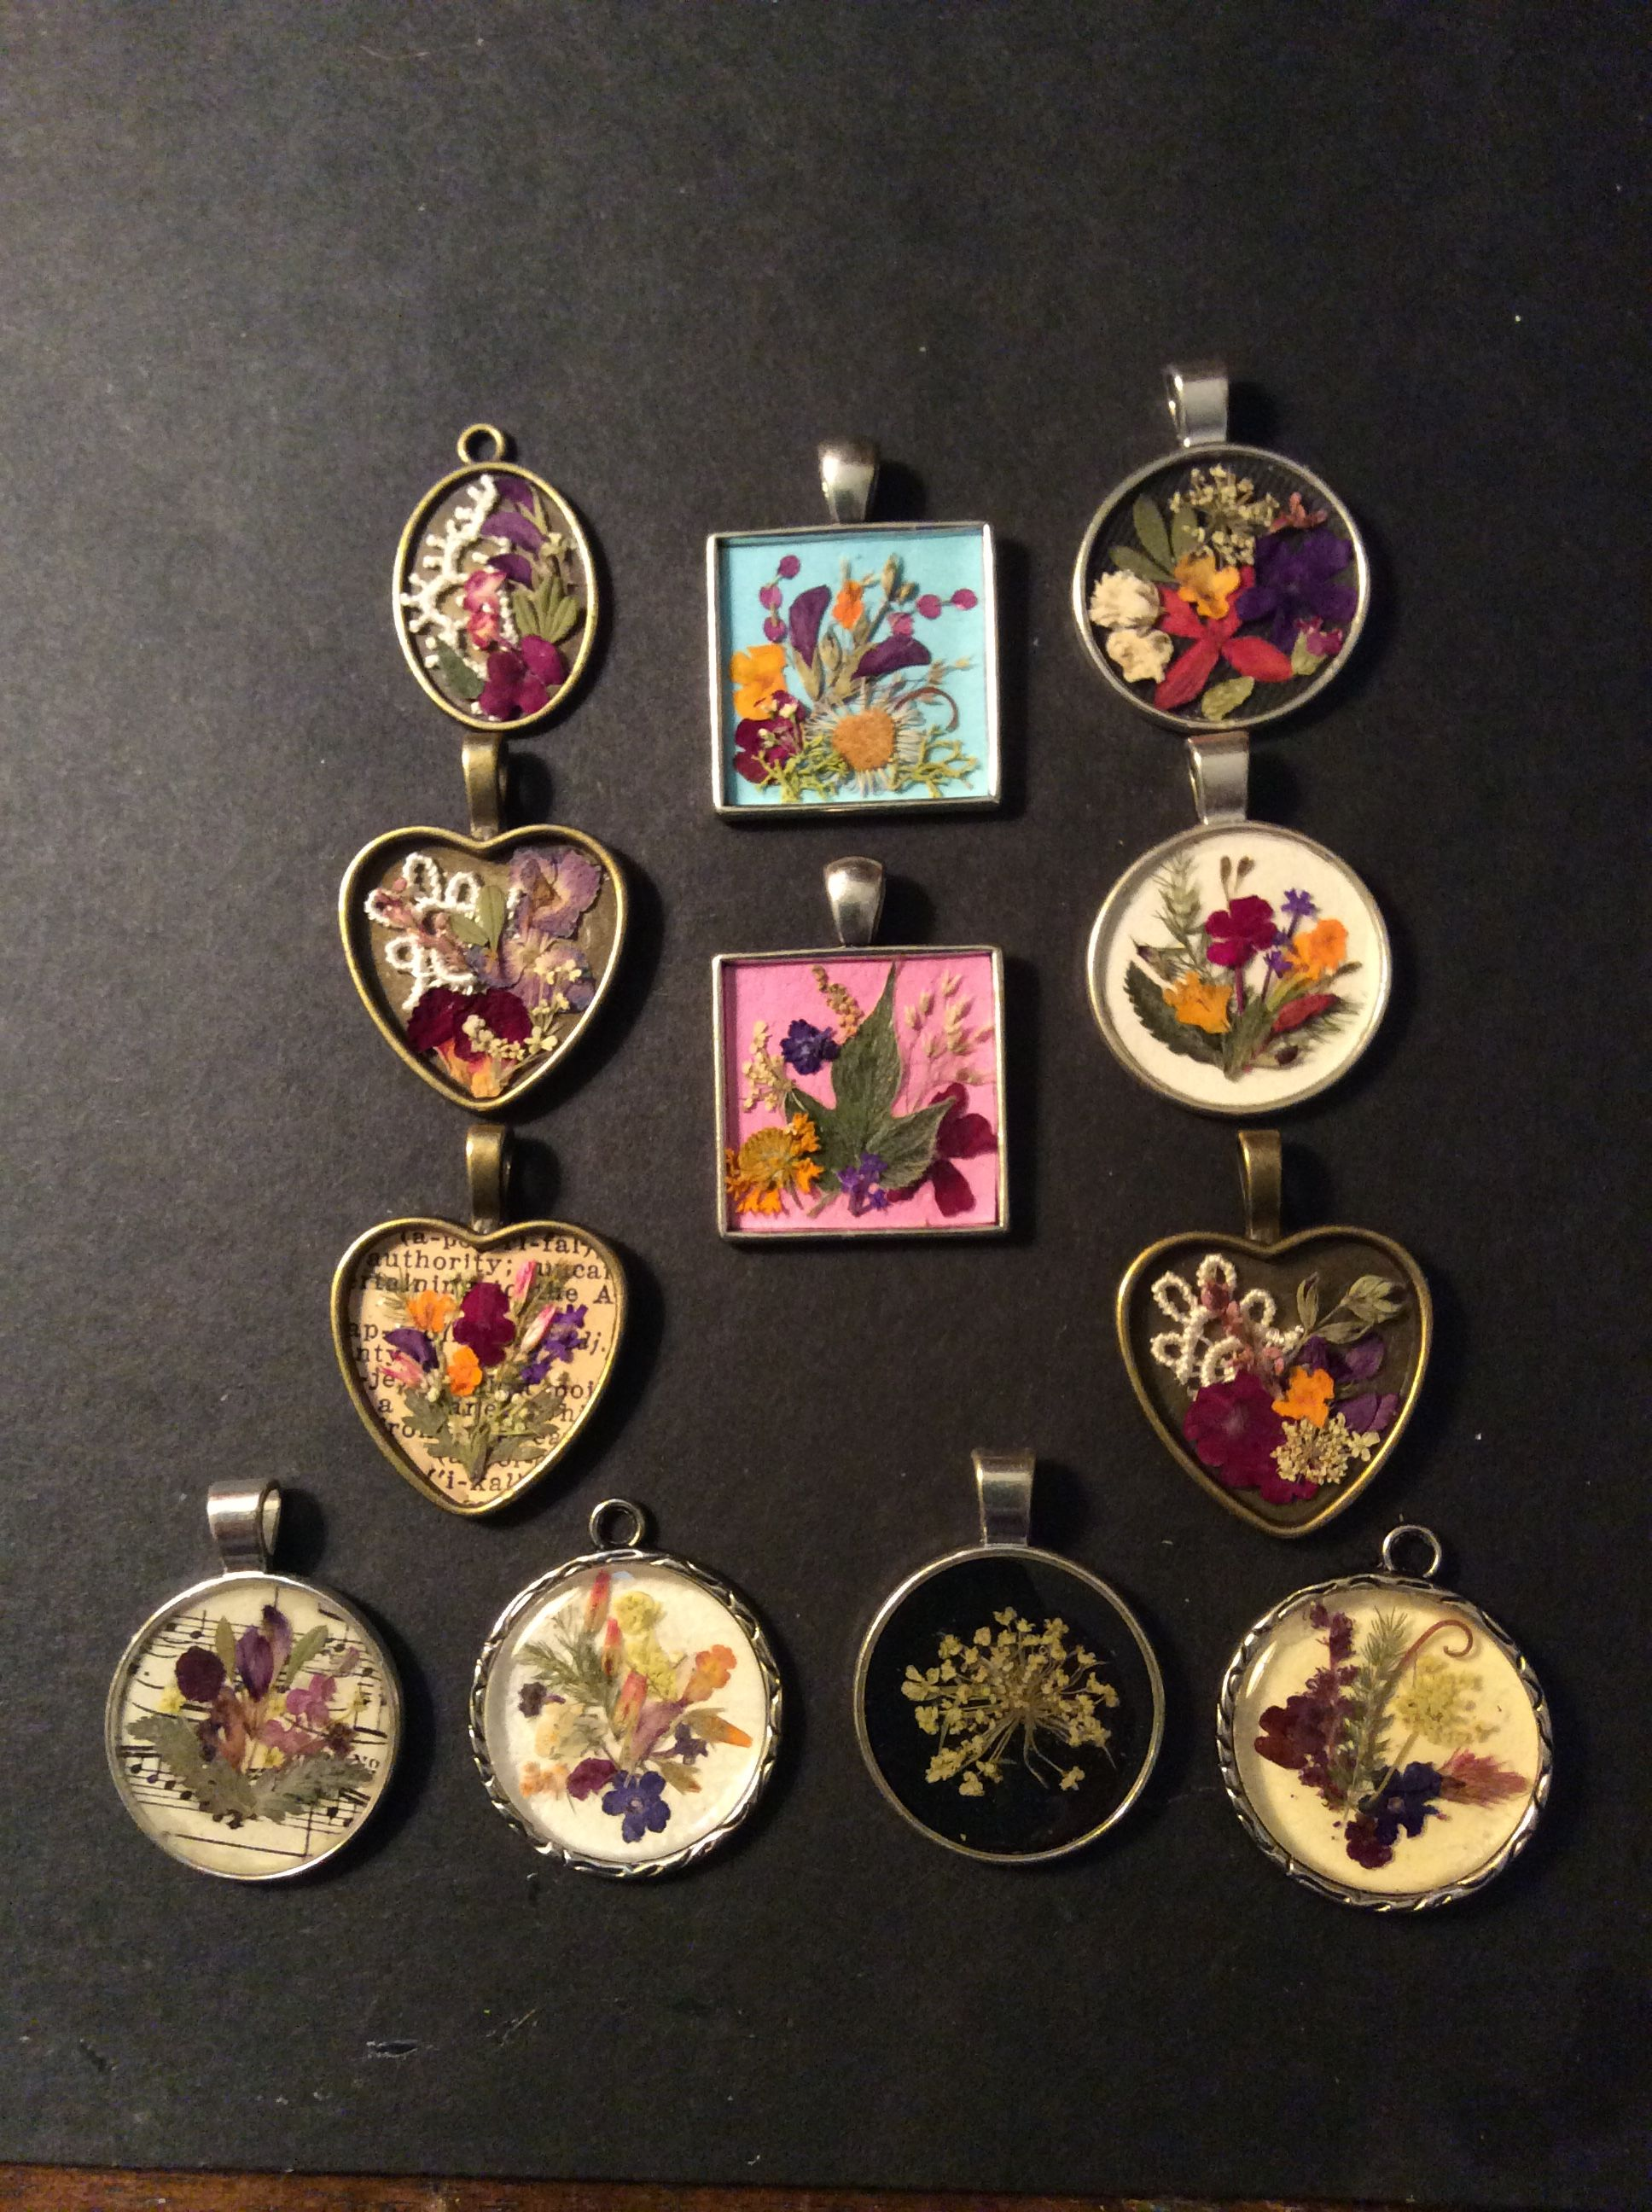 Pin By Judy Stephenson On Preserved Pressed Flower And Resin Designs Pressed Flower Art Resin Jewelry Resin Design